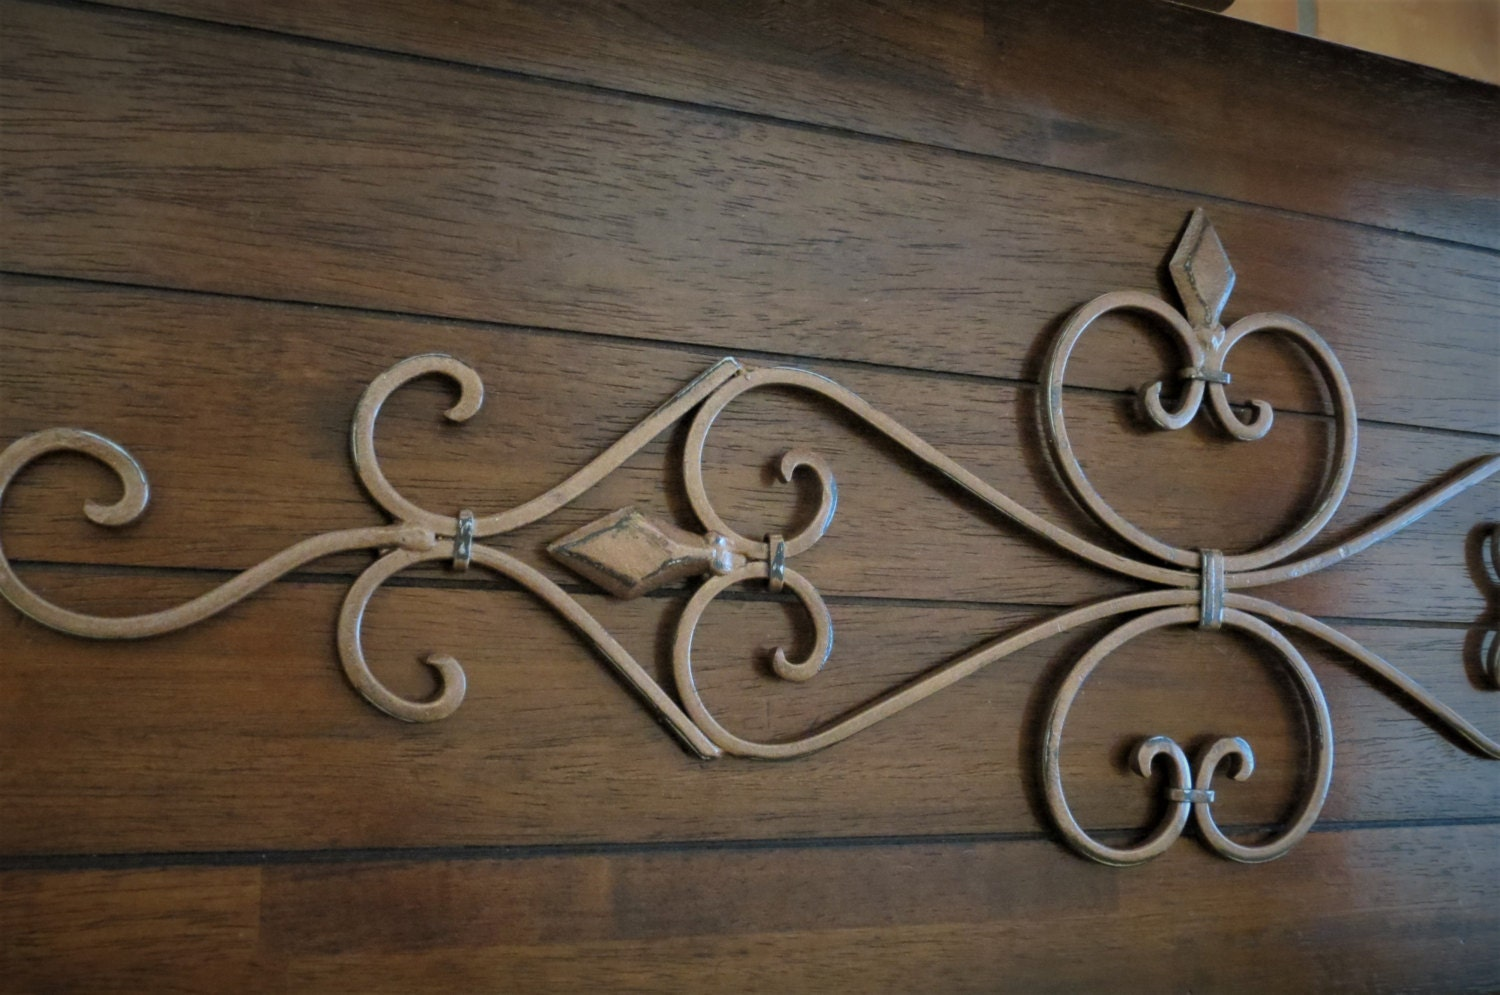 fleur de lis metal wall decor scrolled wrought iron wall. Black Bedroom Furniture Sets. Home Design Ideas